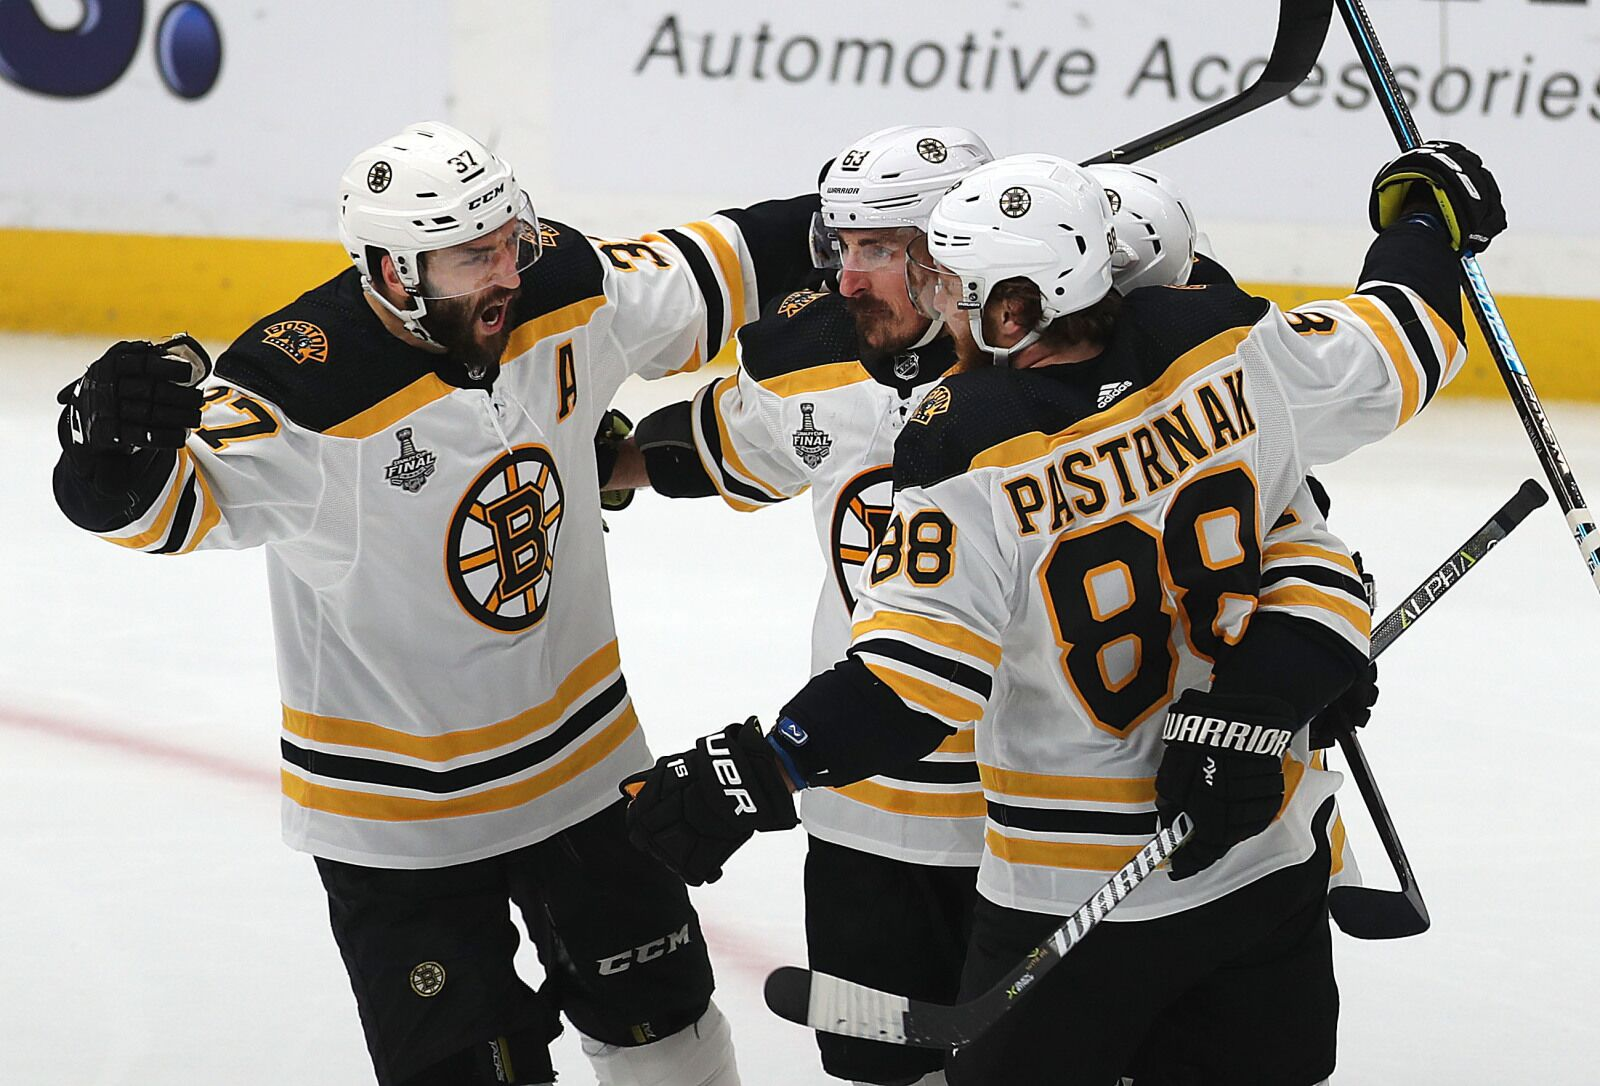 Boston Bruins: Understanding poor production from the 'Perfection Line'